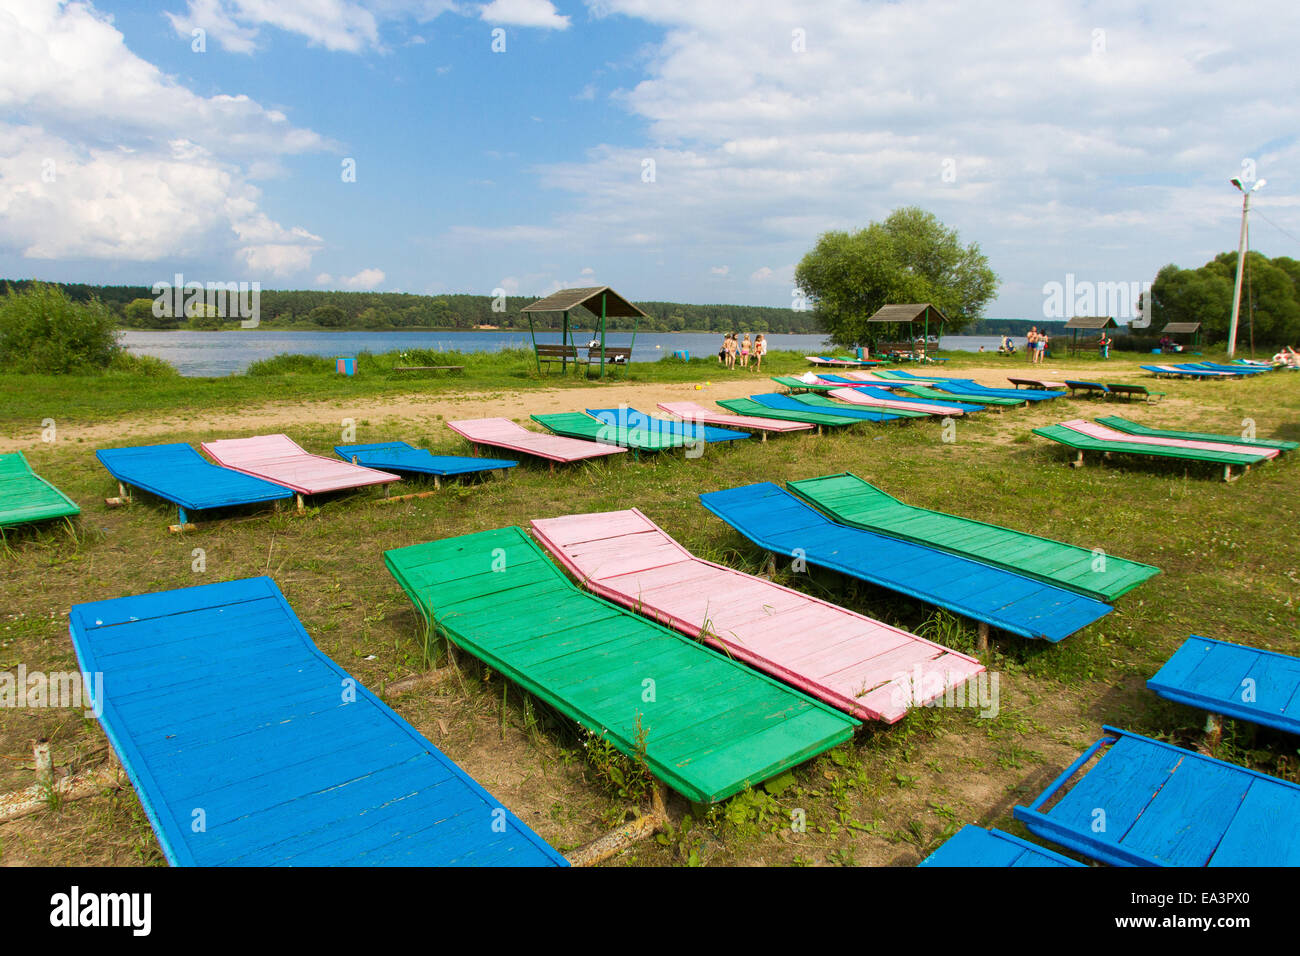 Chaise lounges on beach of the Volga river, Tver region, Russia - Stock Image